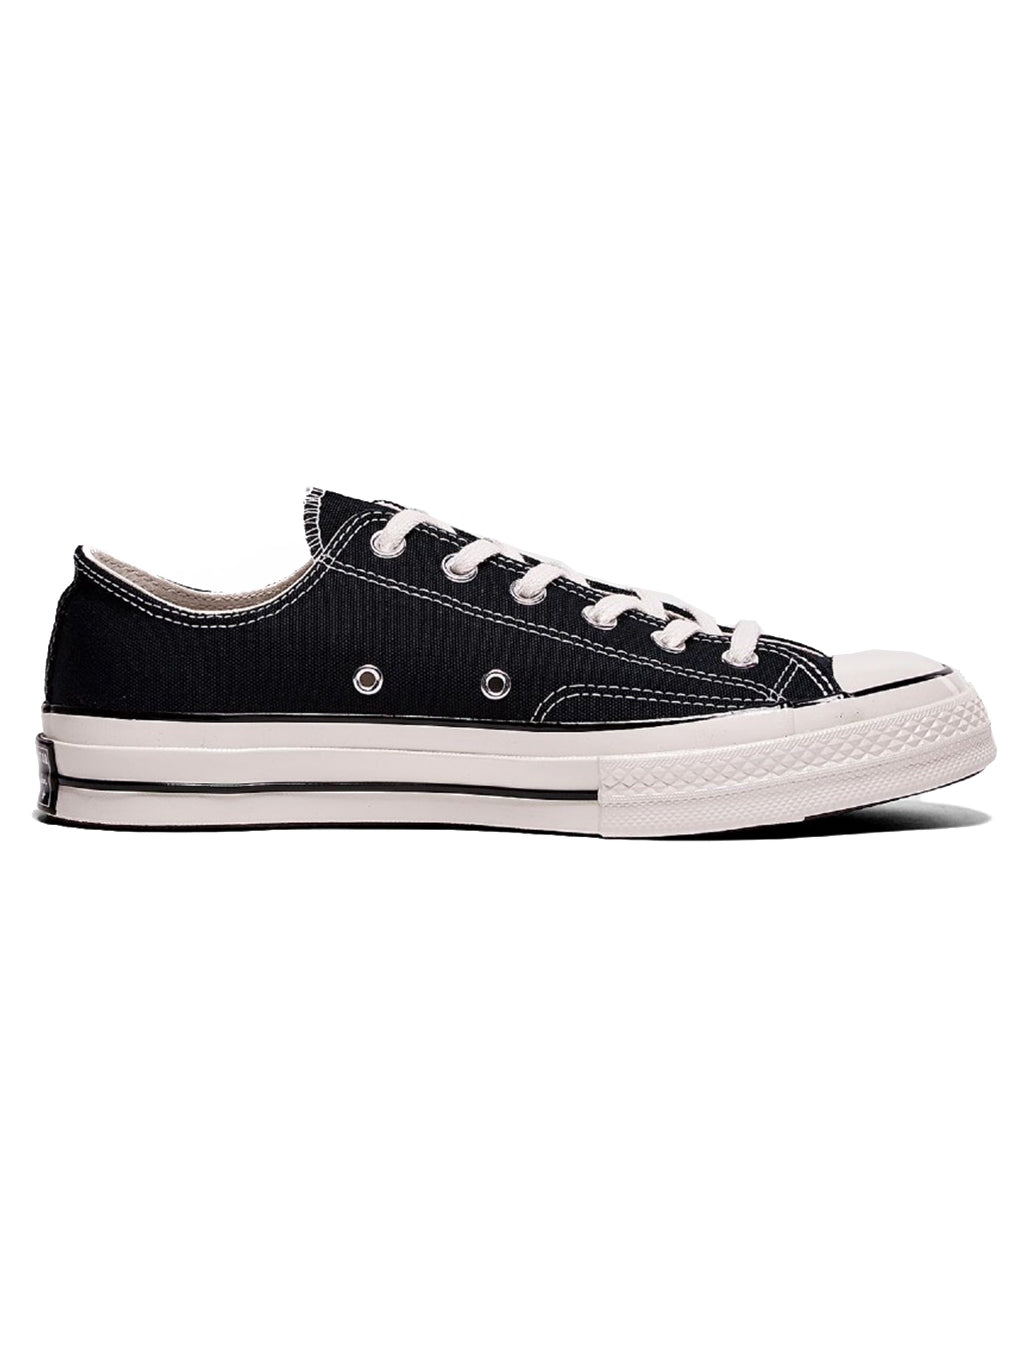 Black & White Chuck Taylor All Star 70S Sneakers